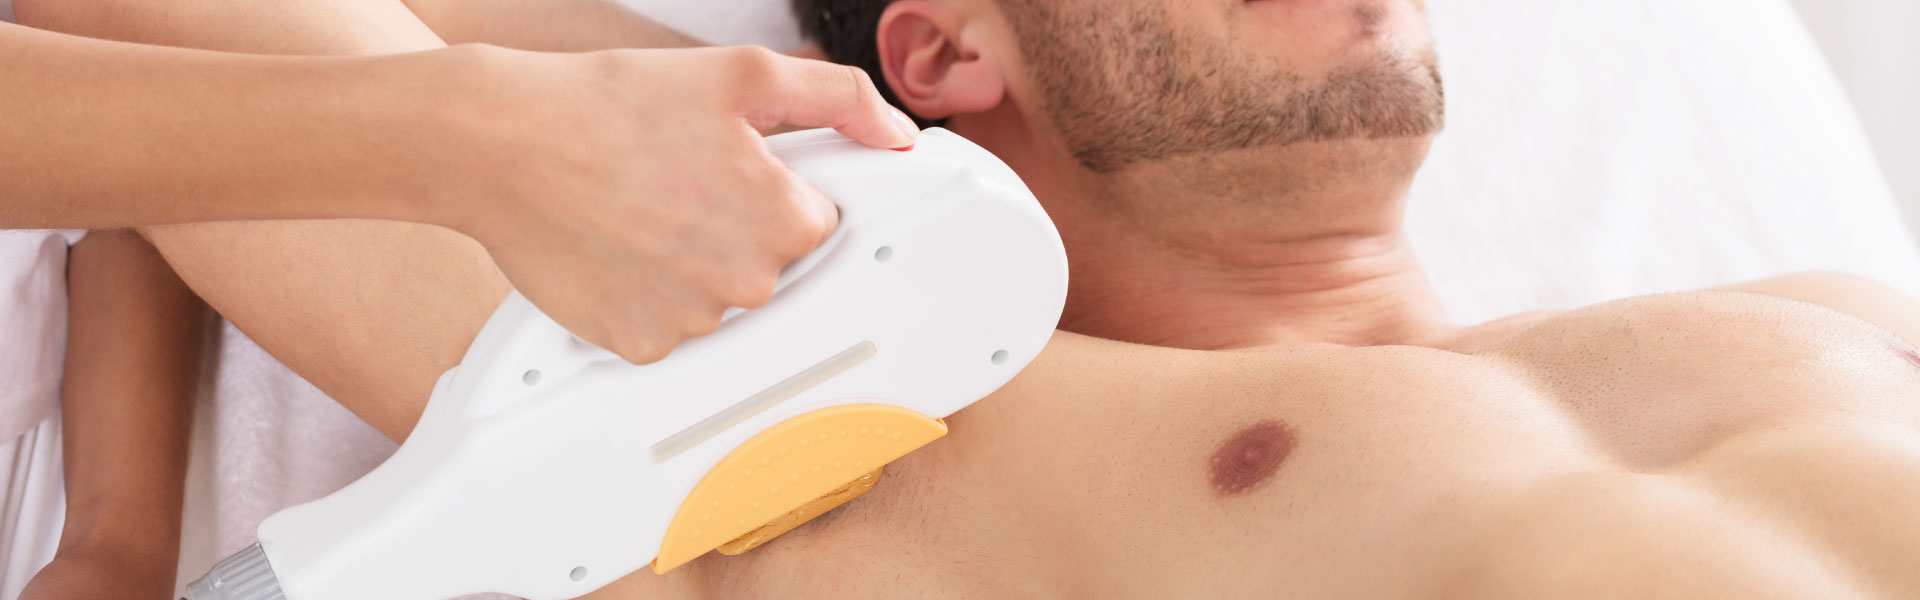 Cheshire Aesthetic Clinic   Inch Loss Skin Care and Hair Removal   Man and hair removal